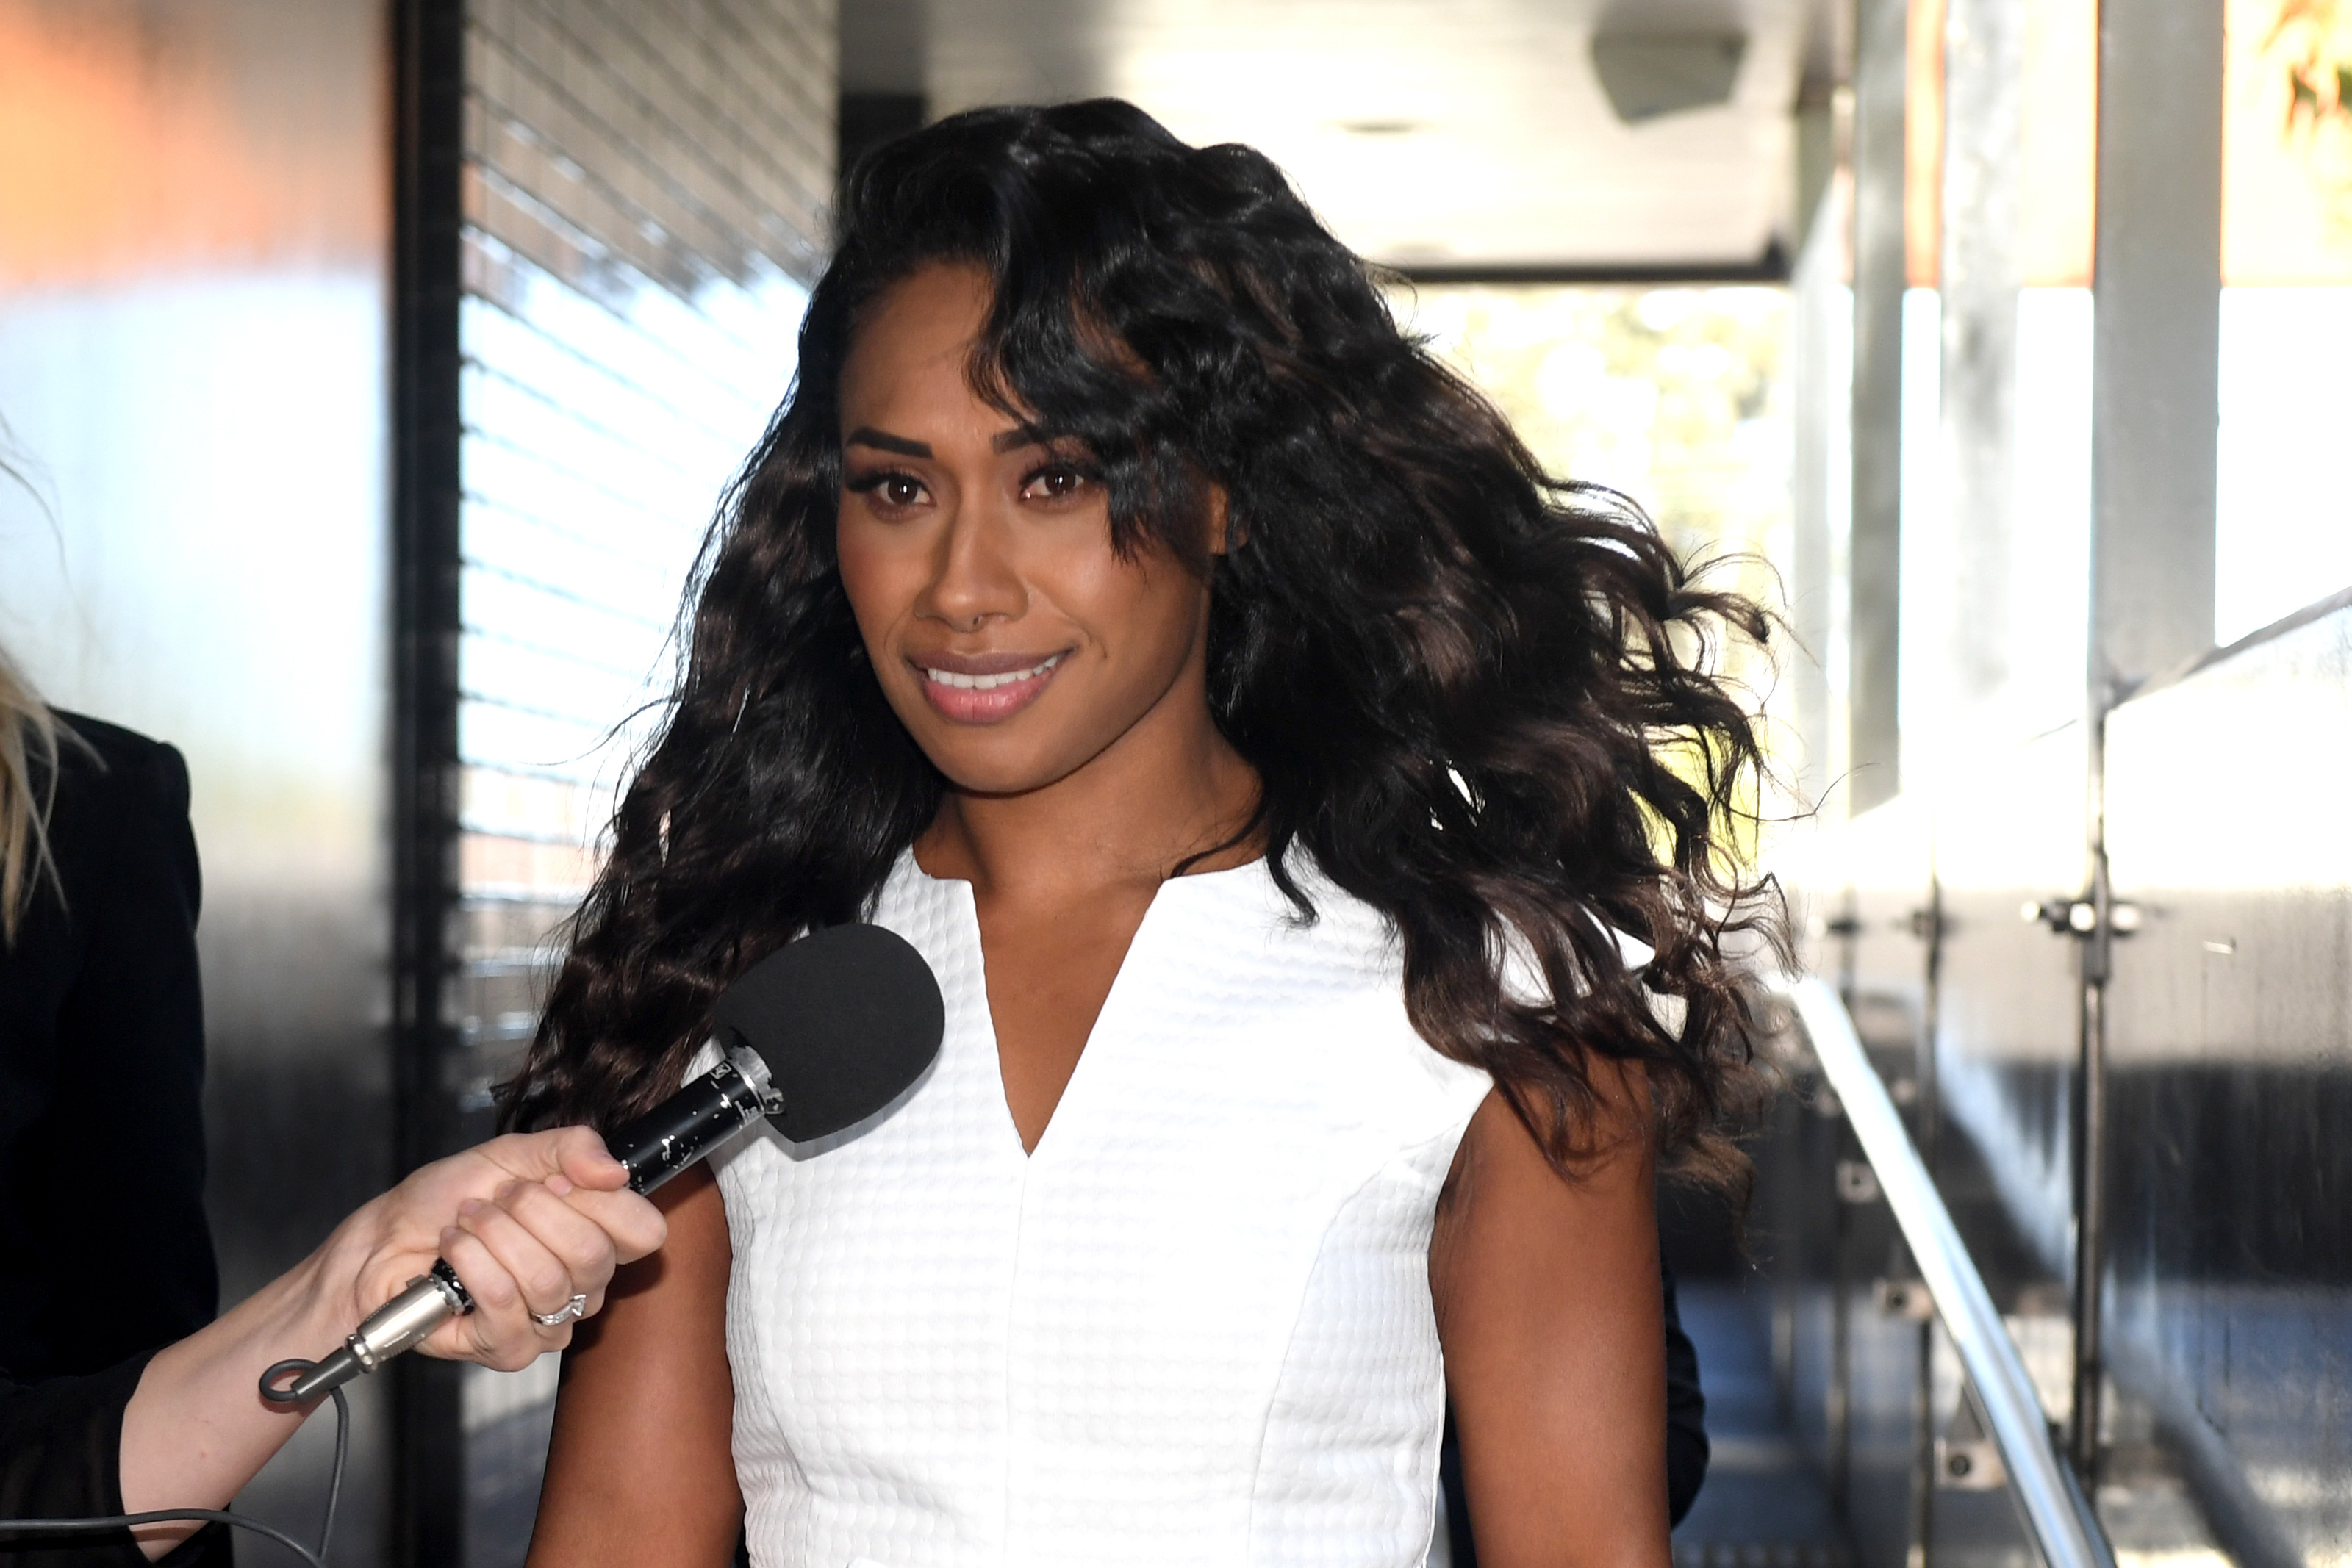 Paulini's atrocious driving record revealed